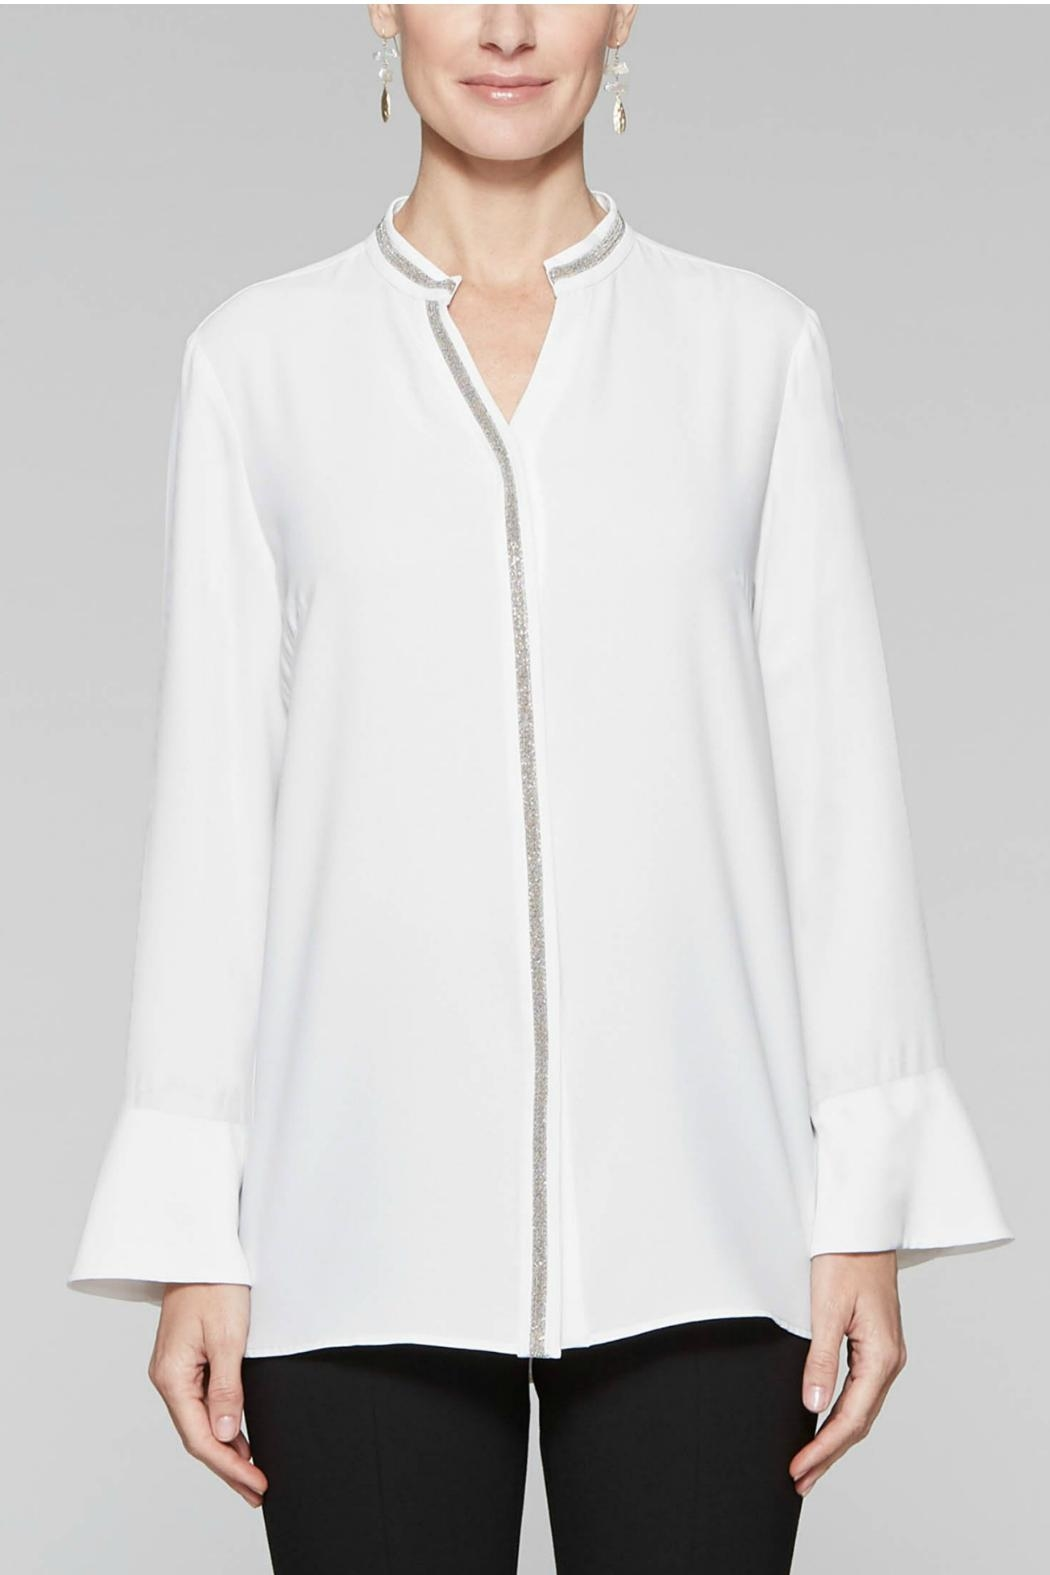 Misook Sparkle Trim Blouse - Front Full Image